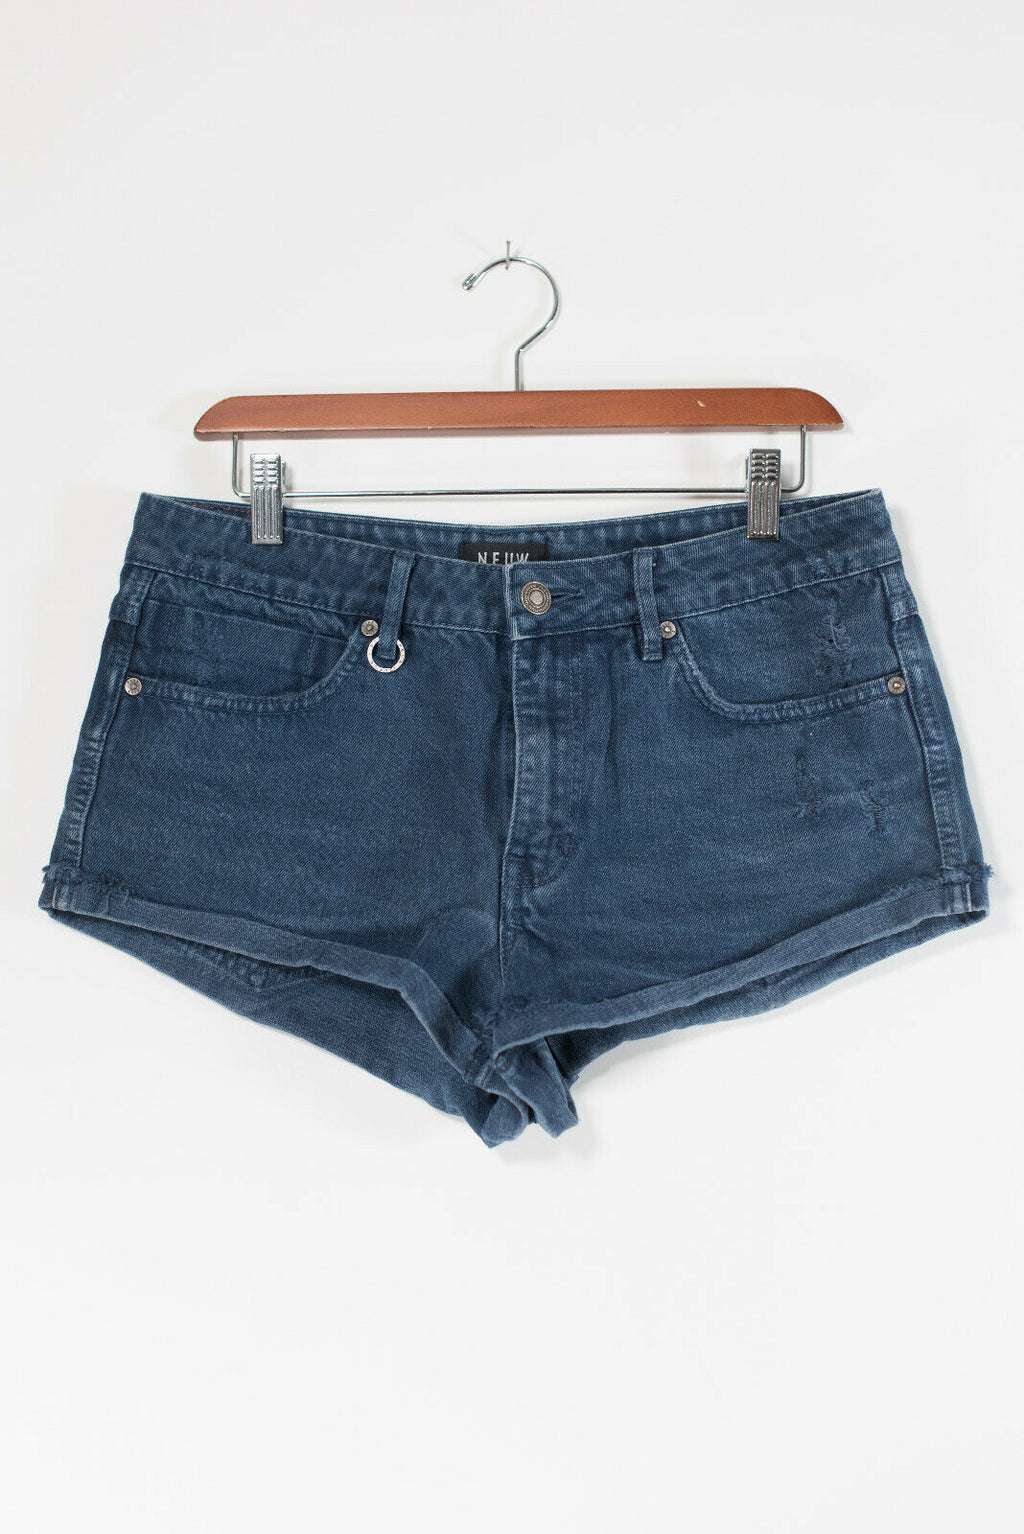 Neuw Women Size 29 Medium Dark Blue Jean Shorts 5 pocket Denim Cutoff Shorts